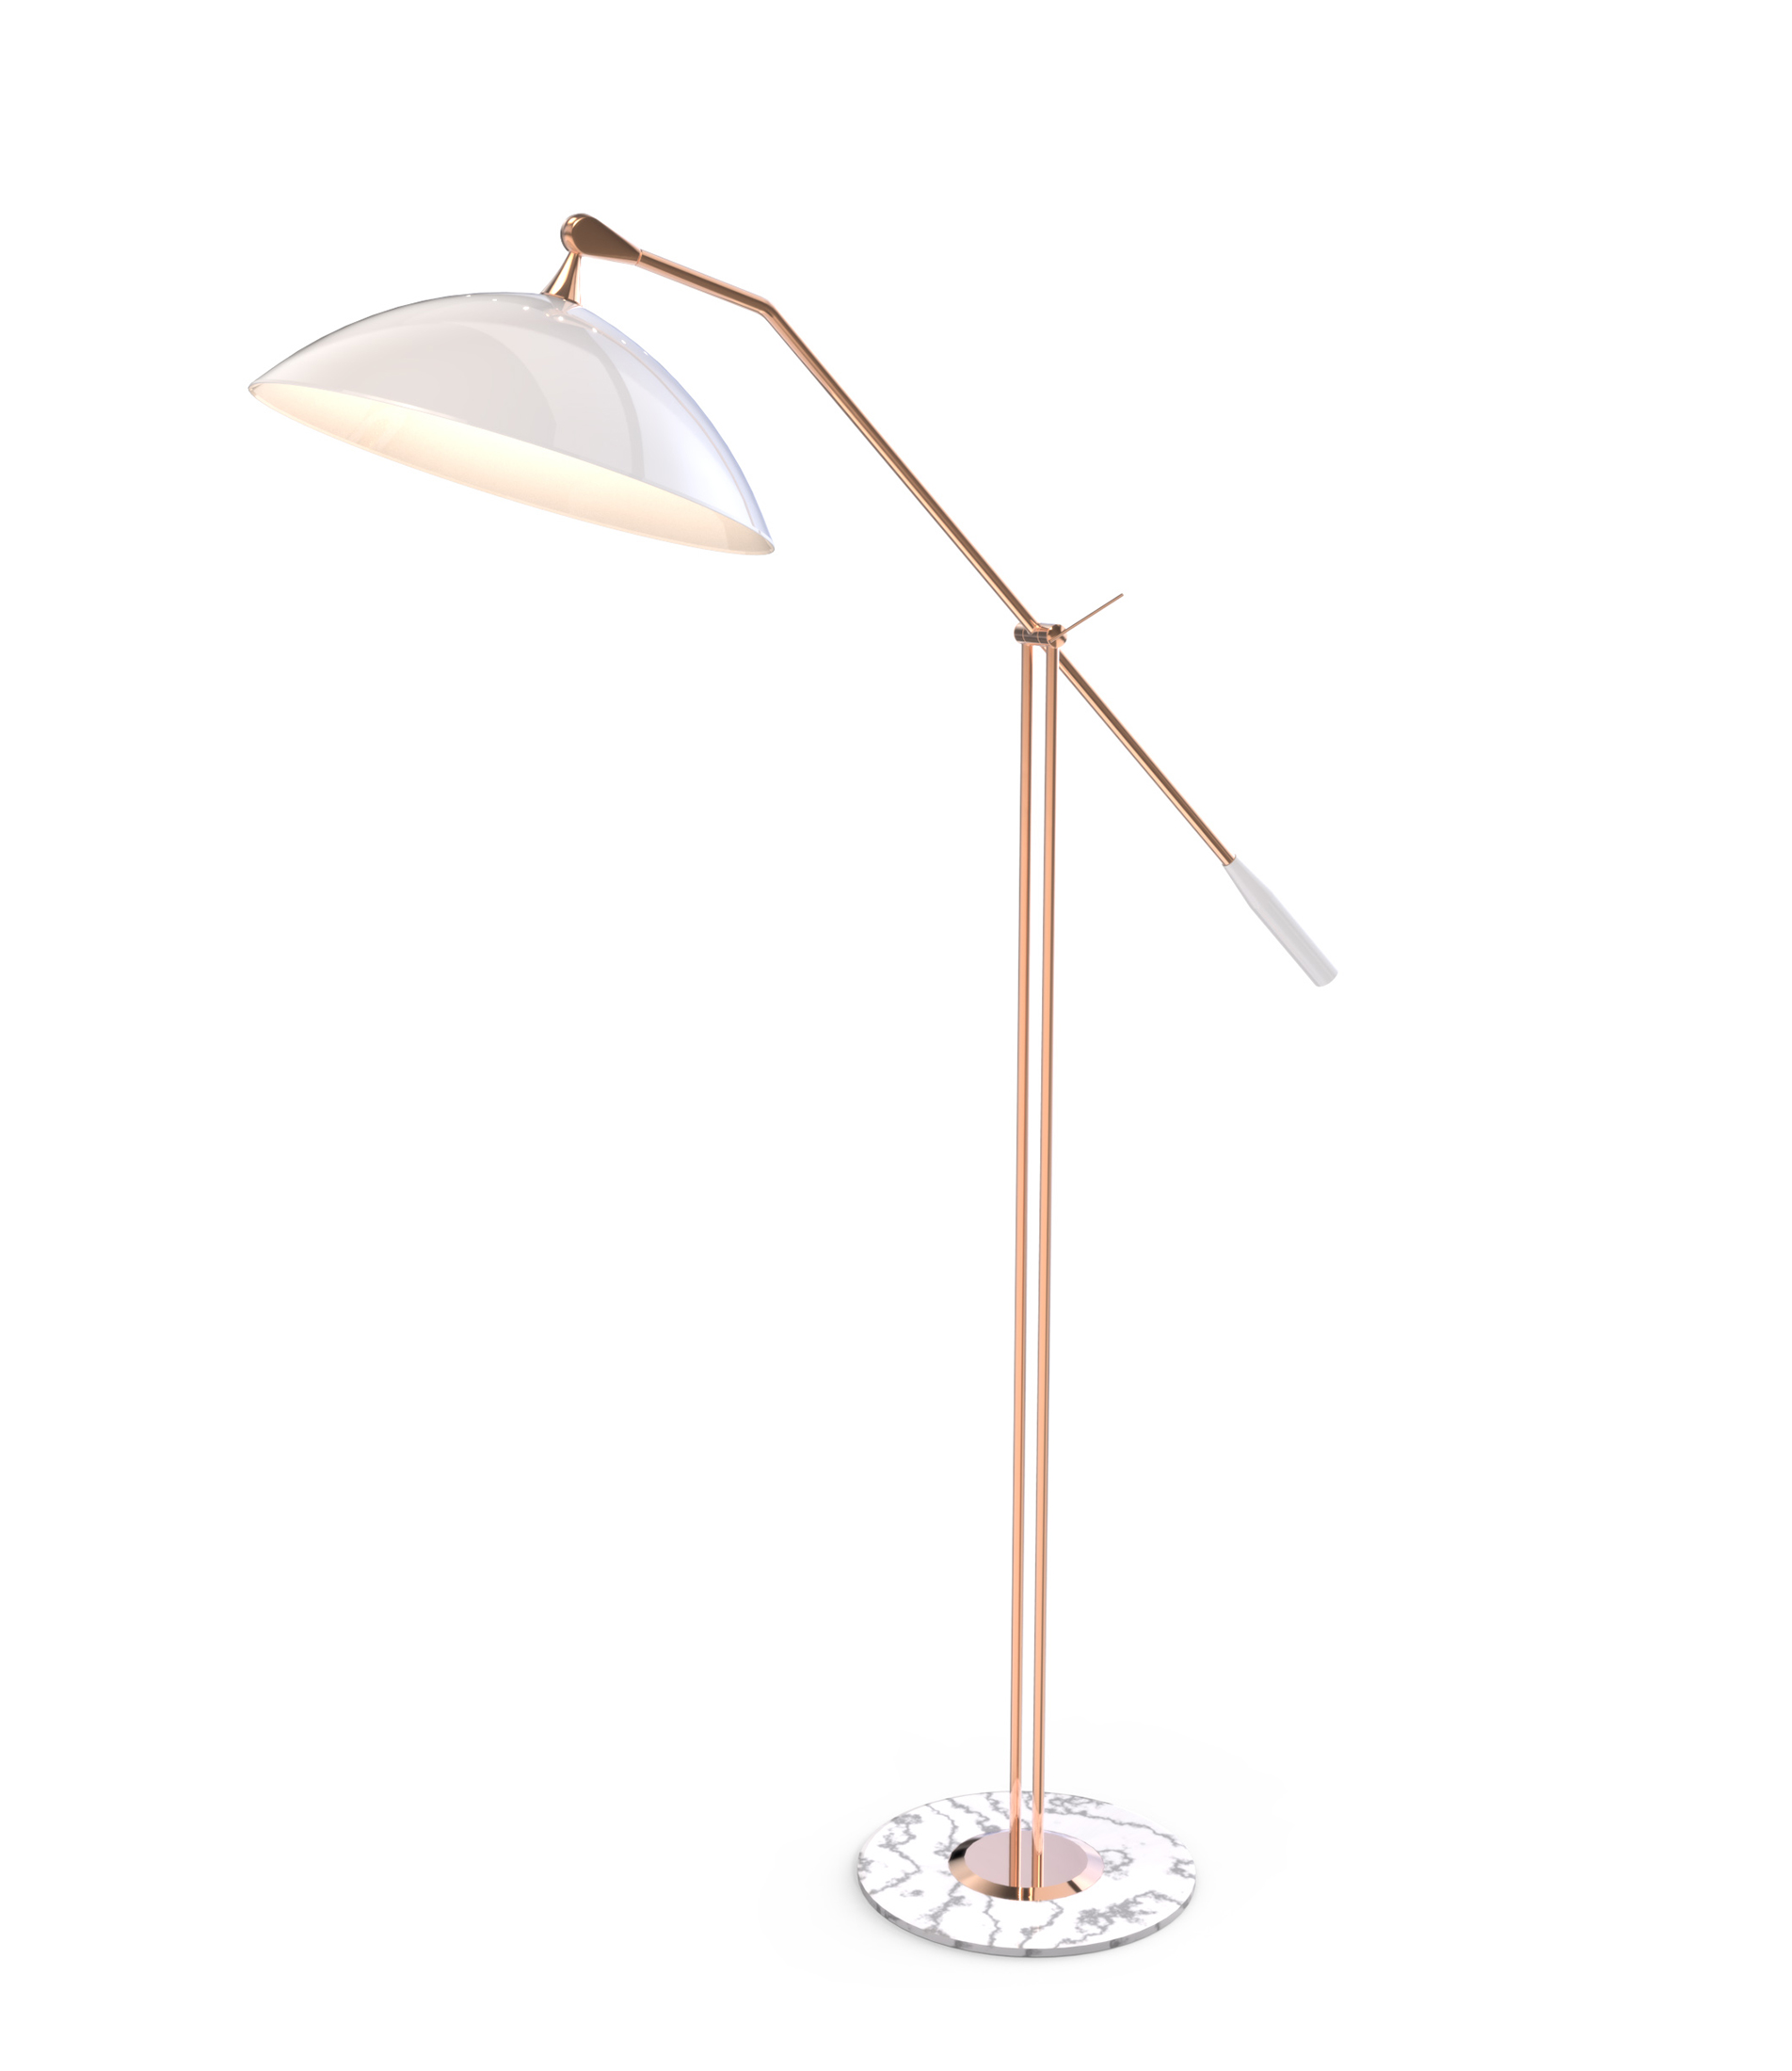 Bright Ideas The Perfect Floor Lamp For Your Scandinavian Design 1 Modern